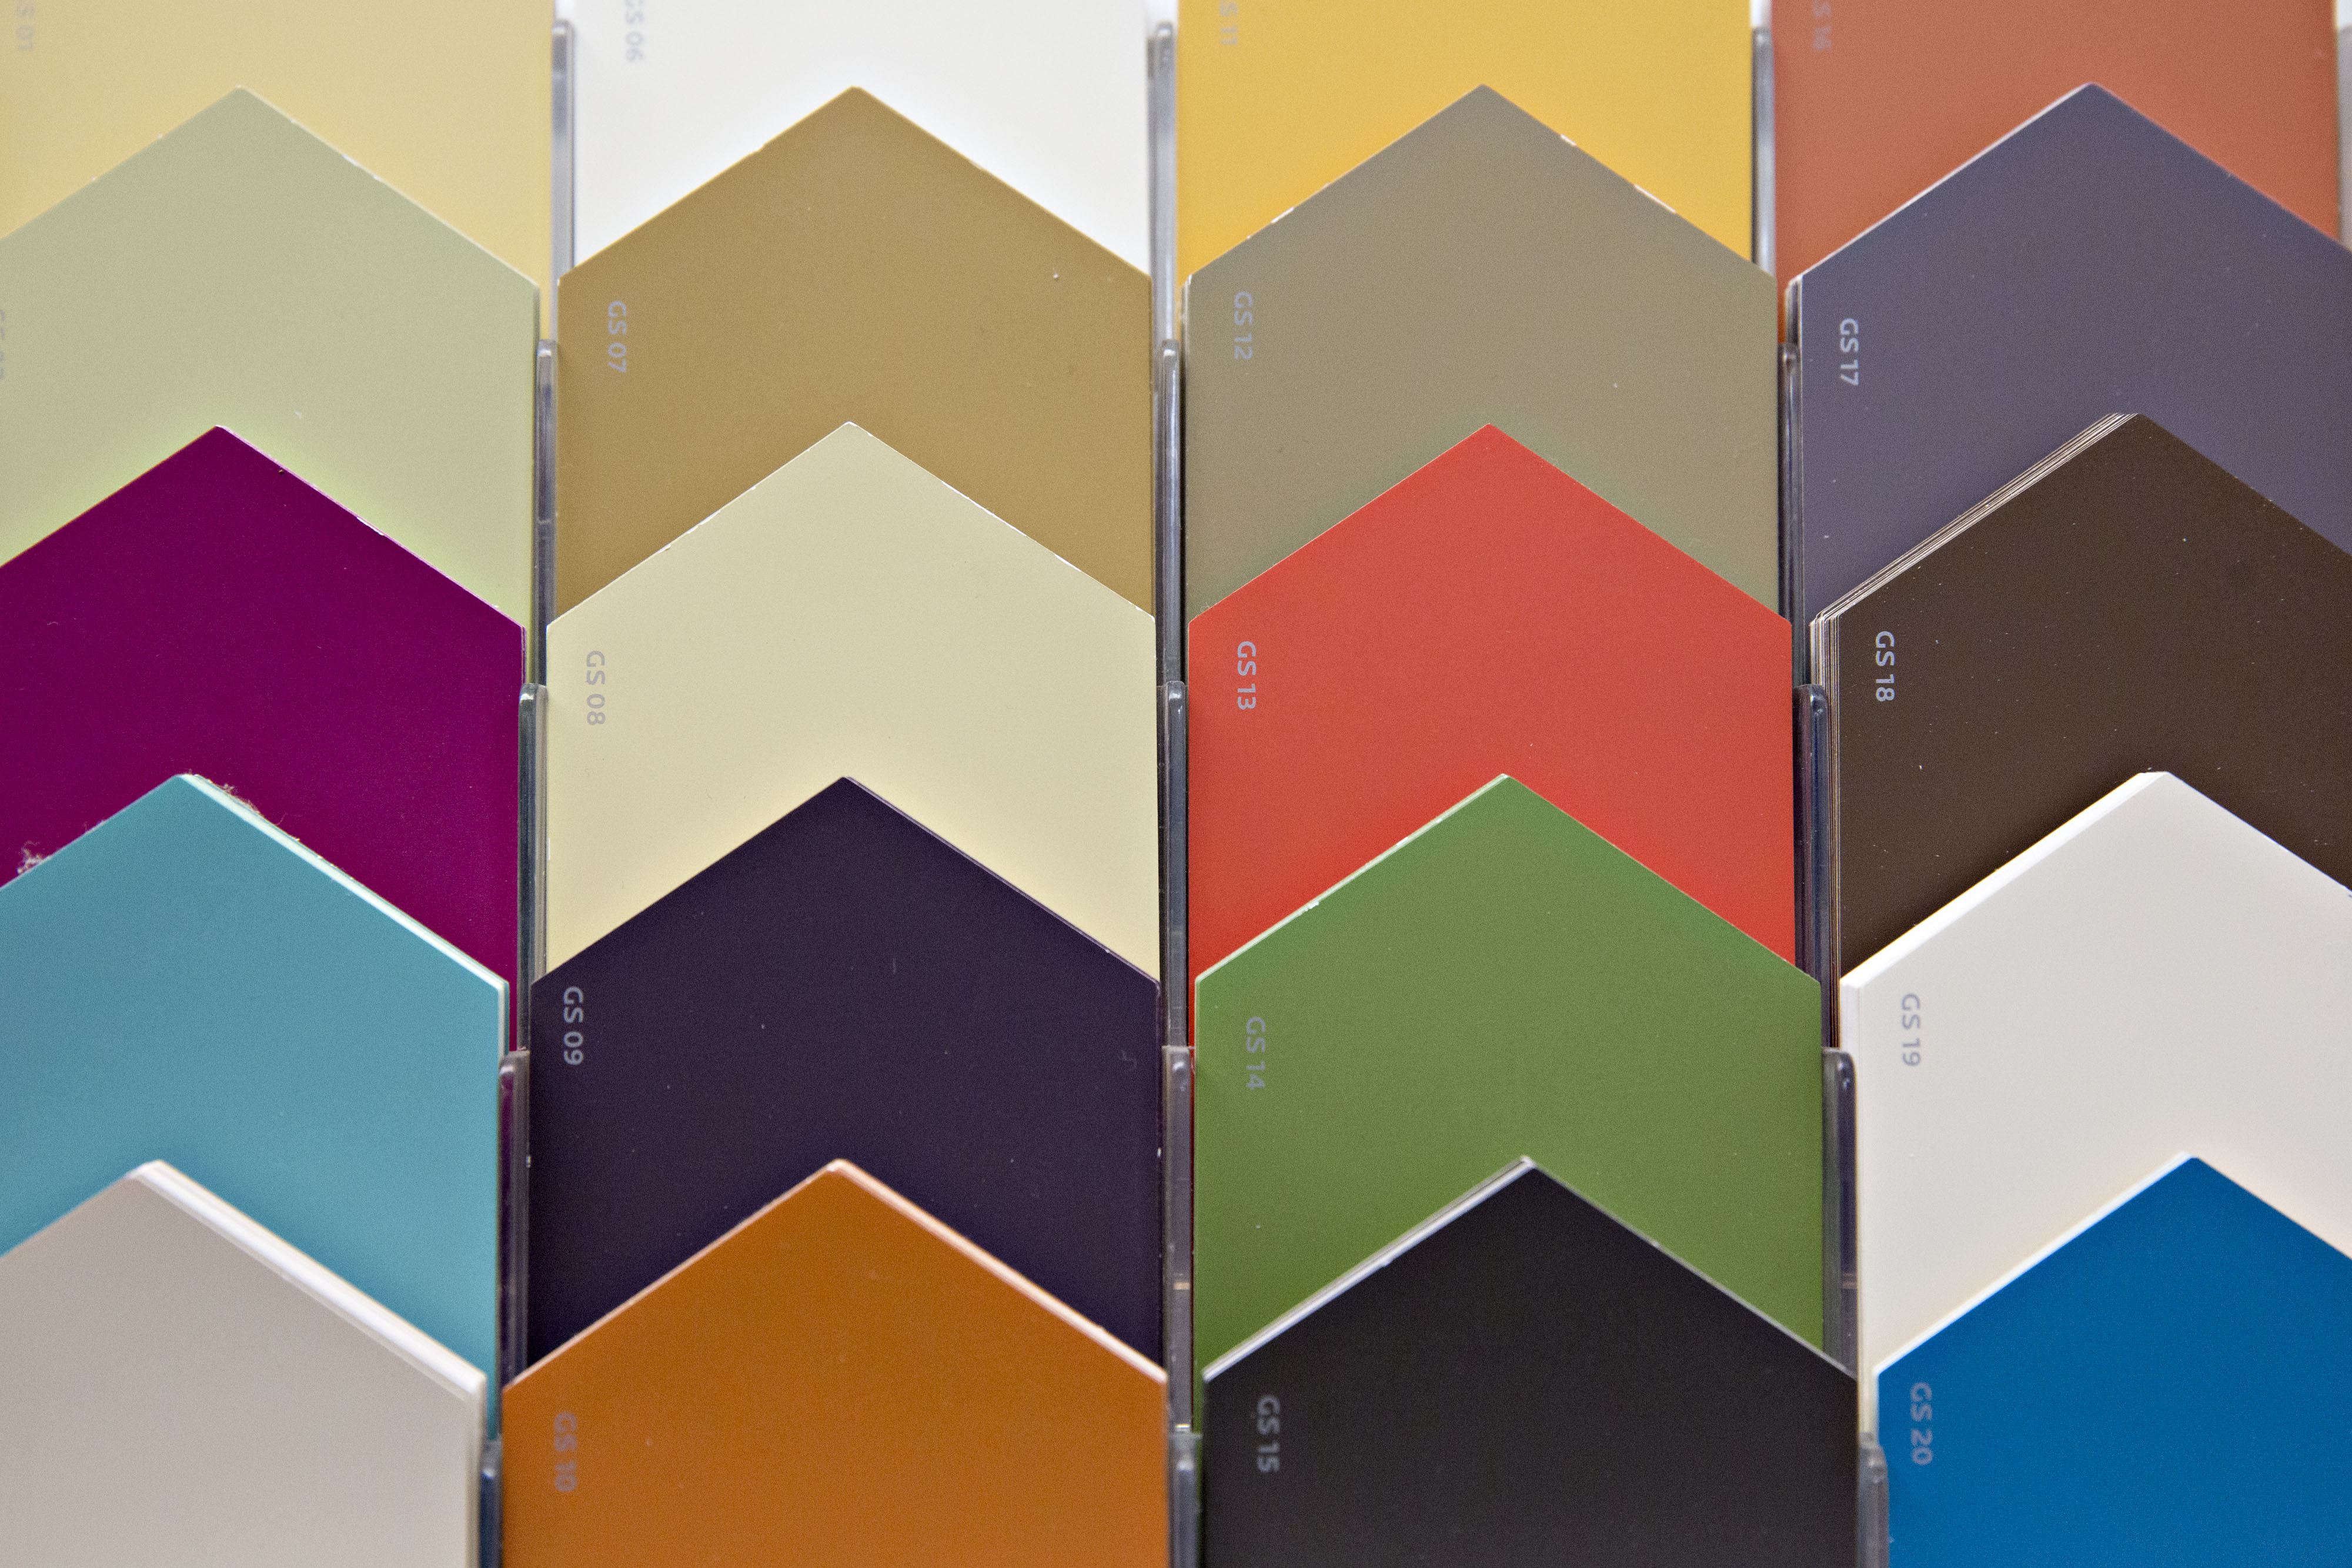 Stocks For Sherwin Williams Investors The Color Of The